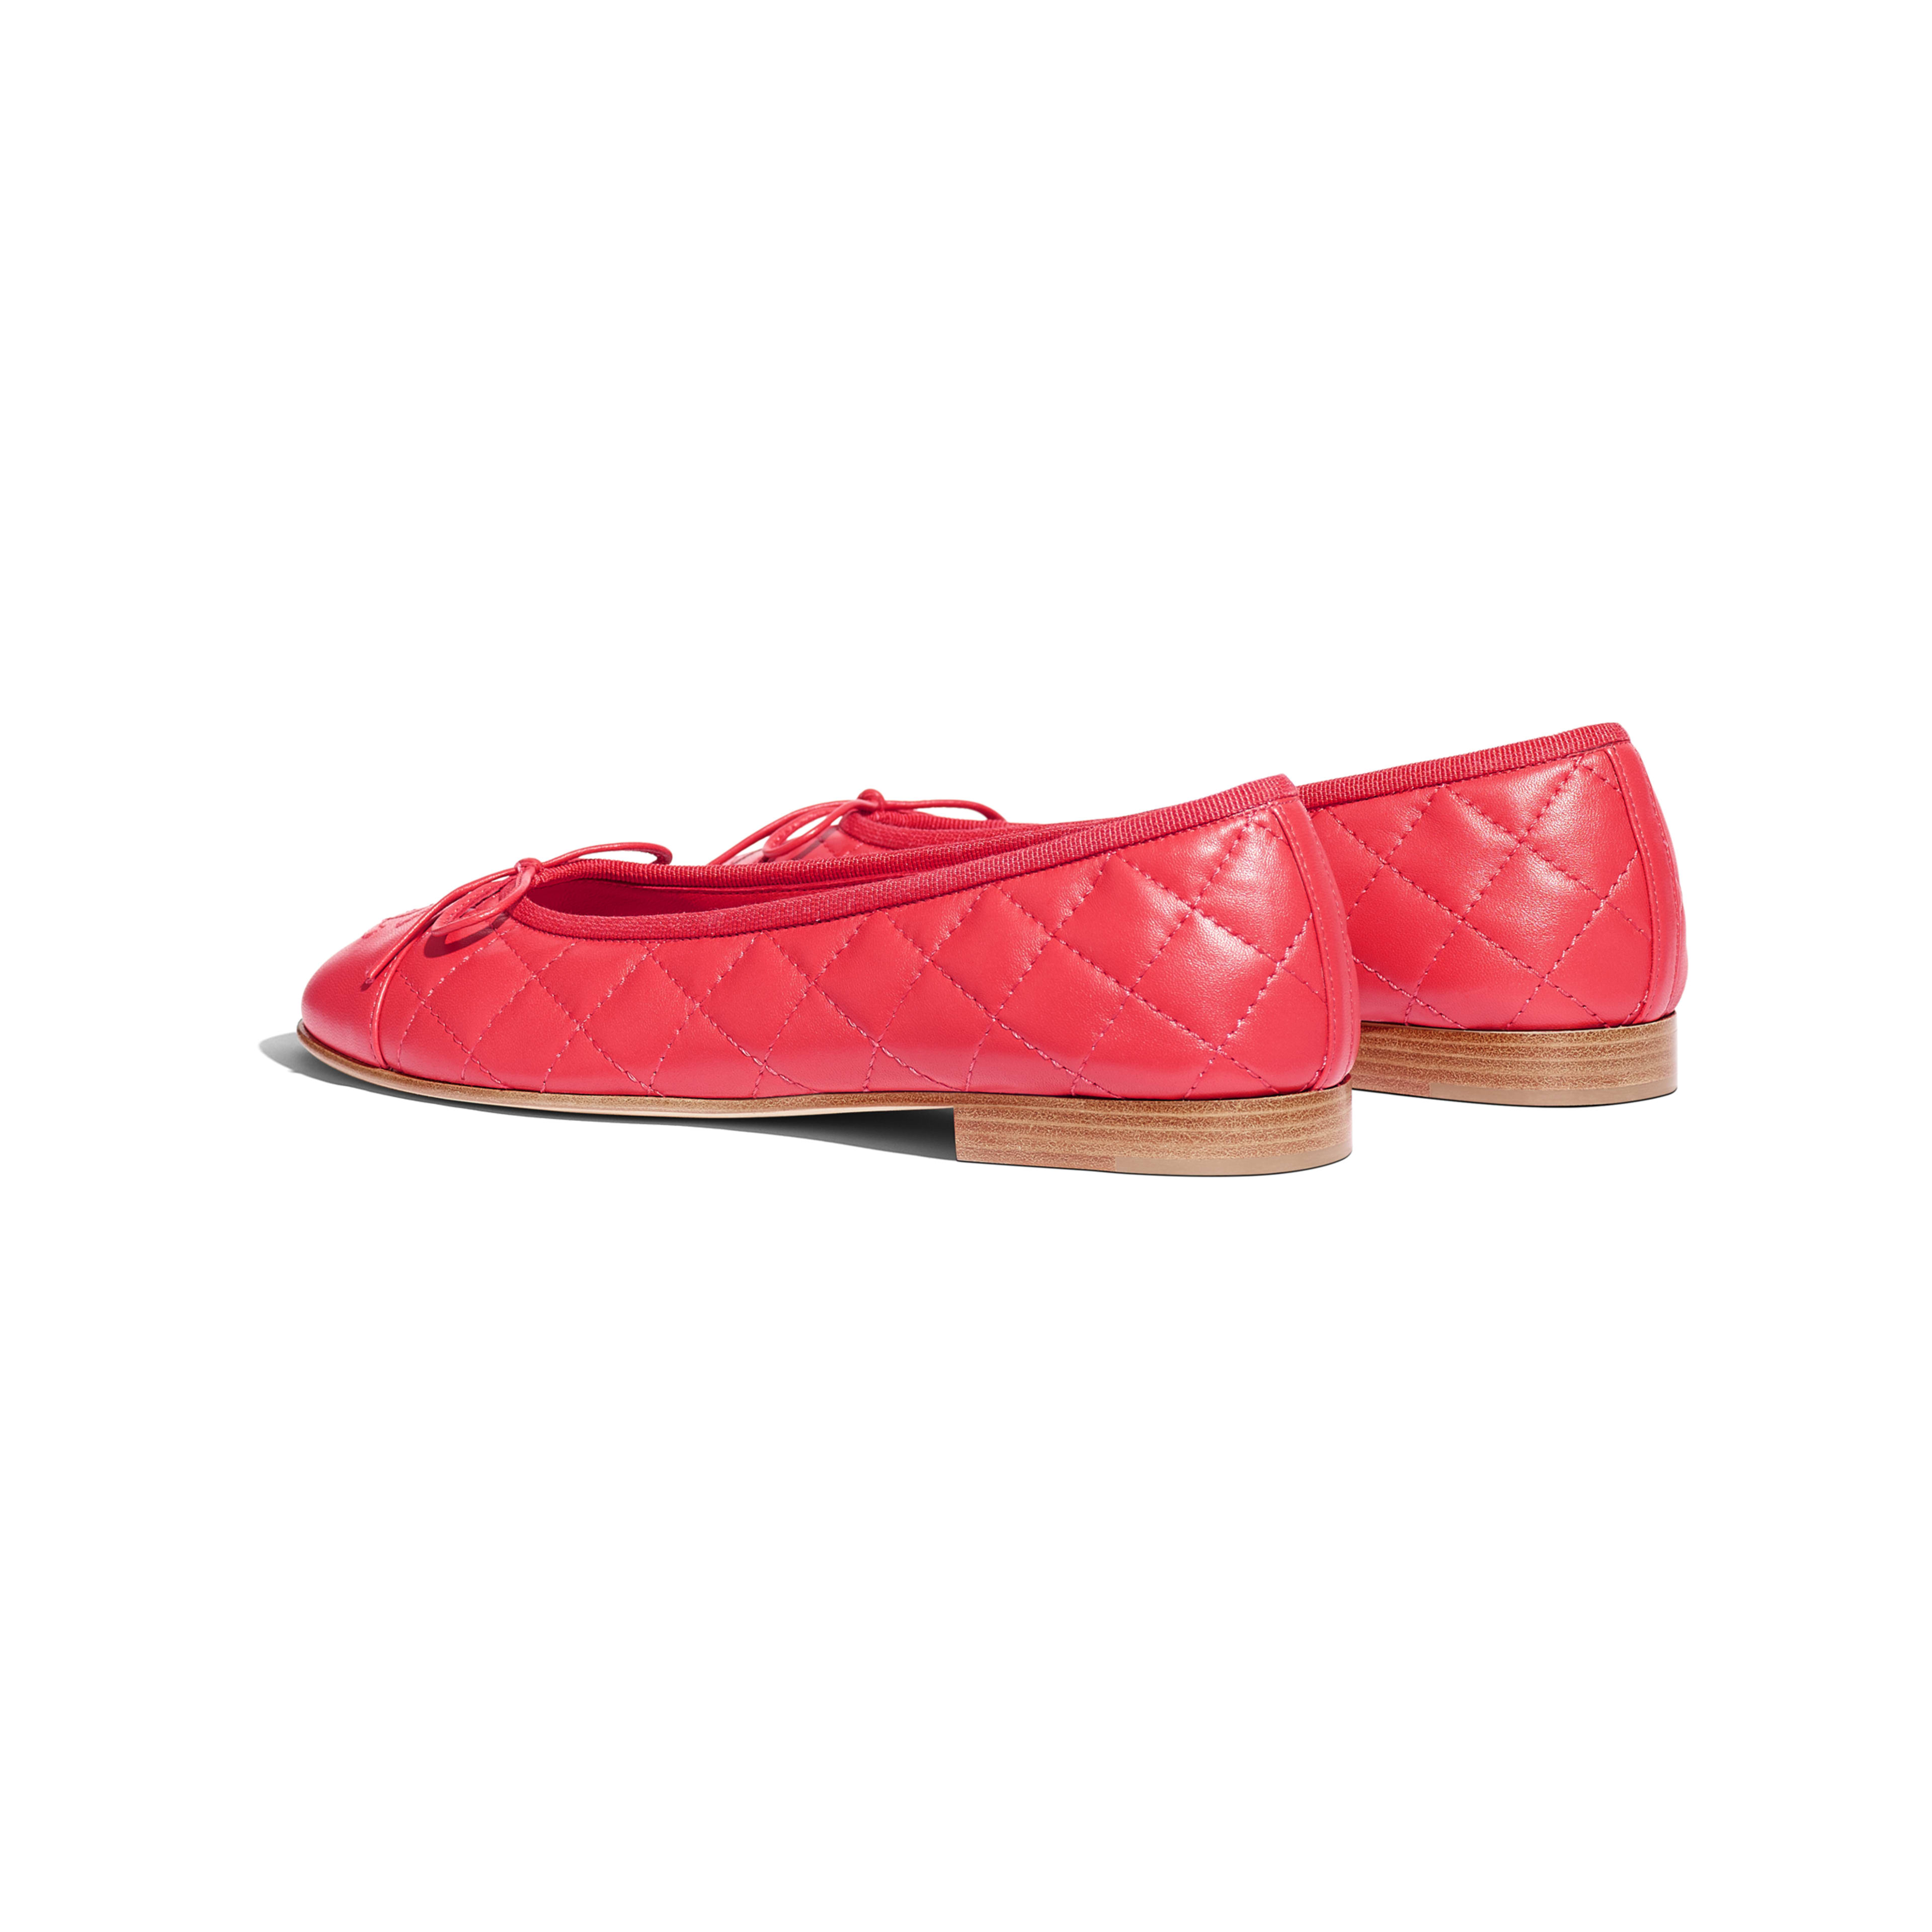 Ballerinas - Red - Lambskin - Other view - see full sized version